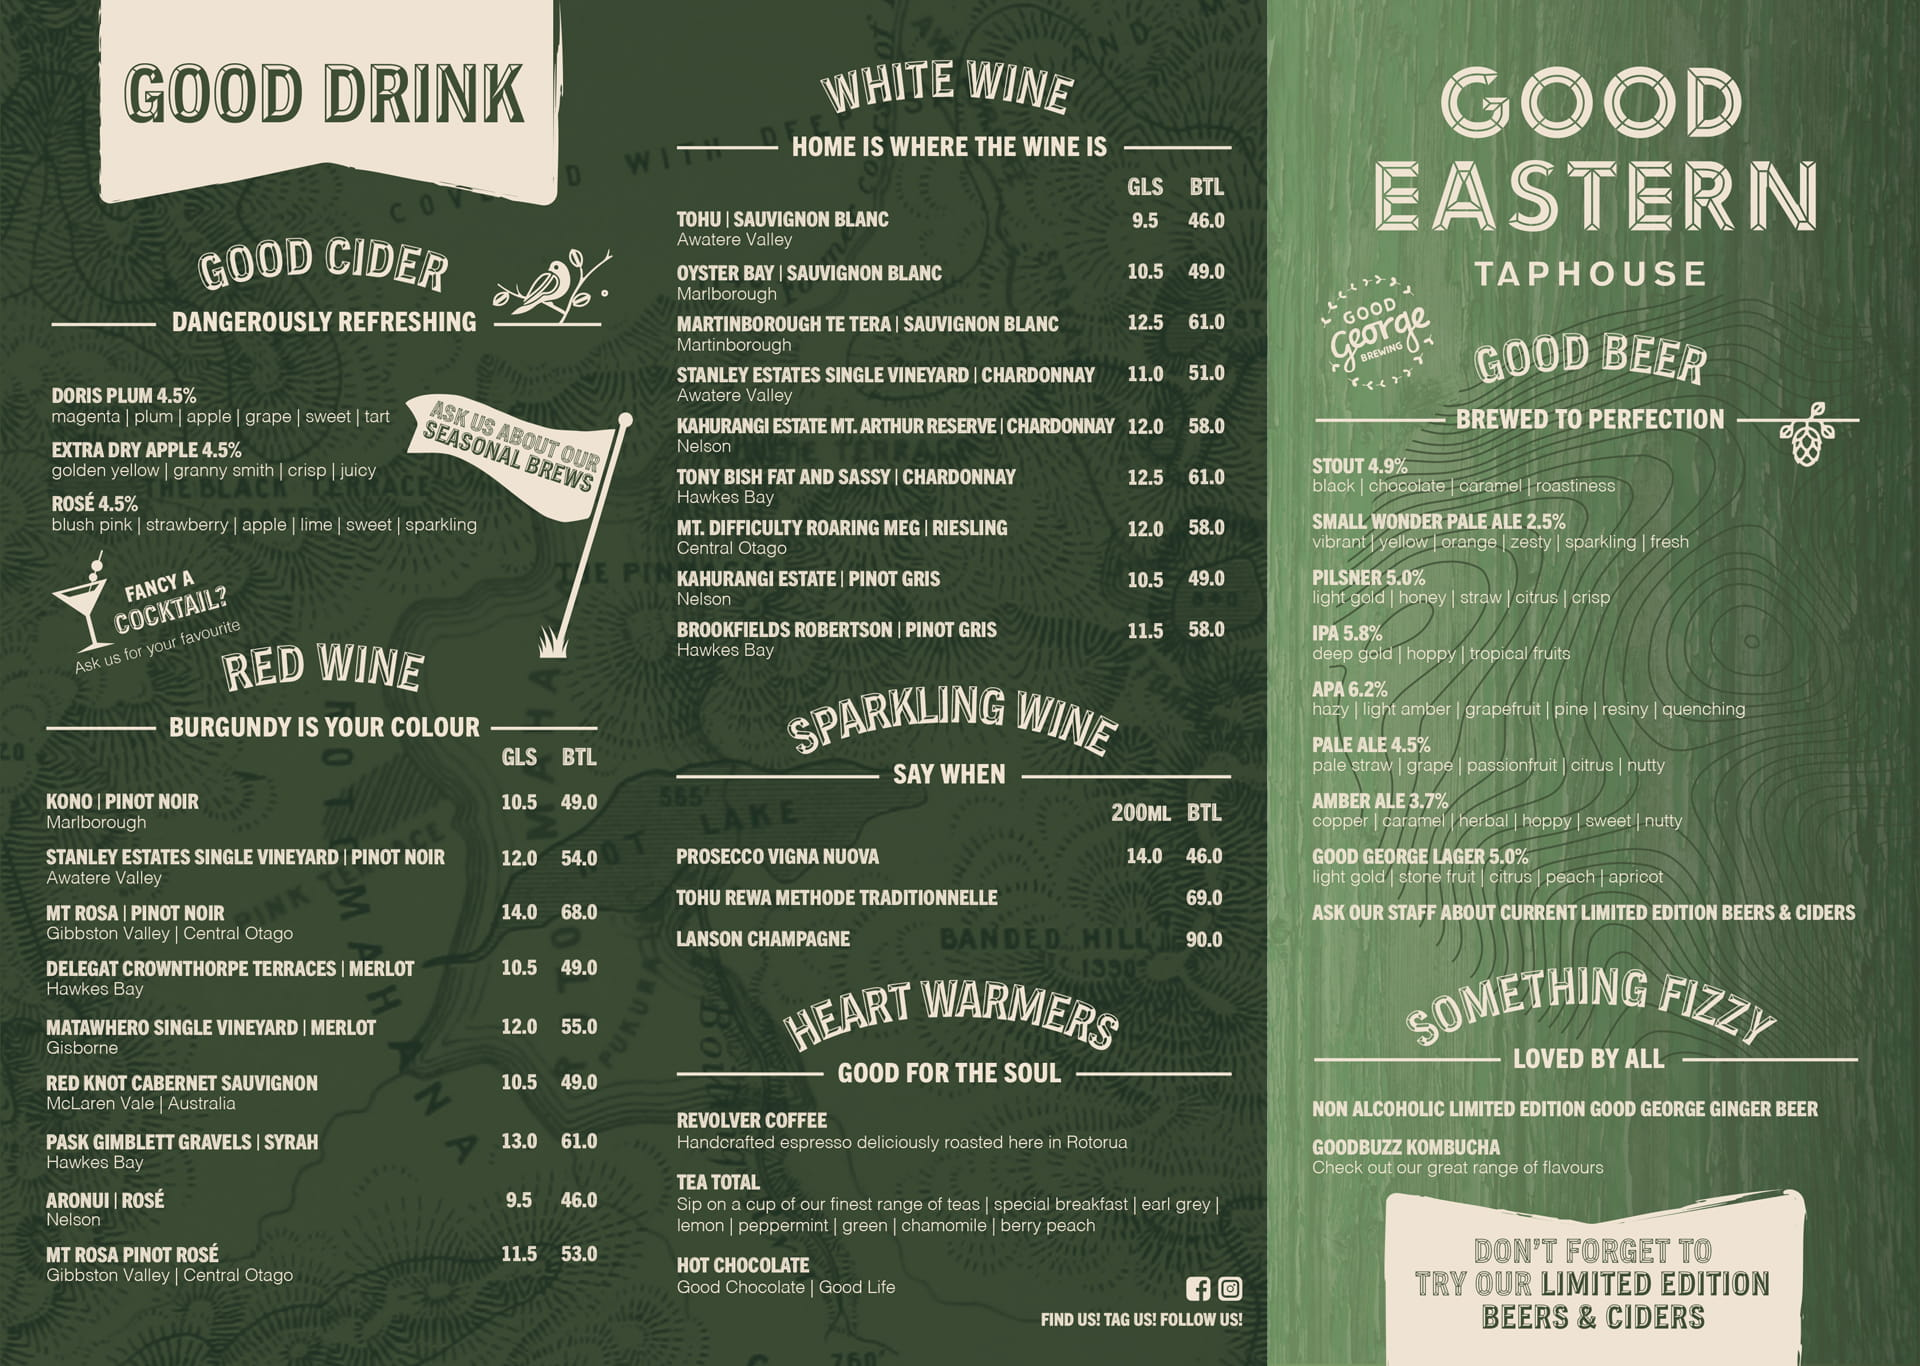 Good Eastern Taphouse NEW Menu 2020 page 1